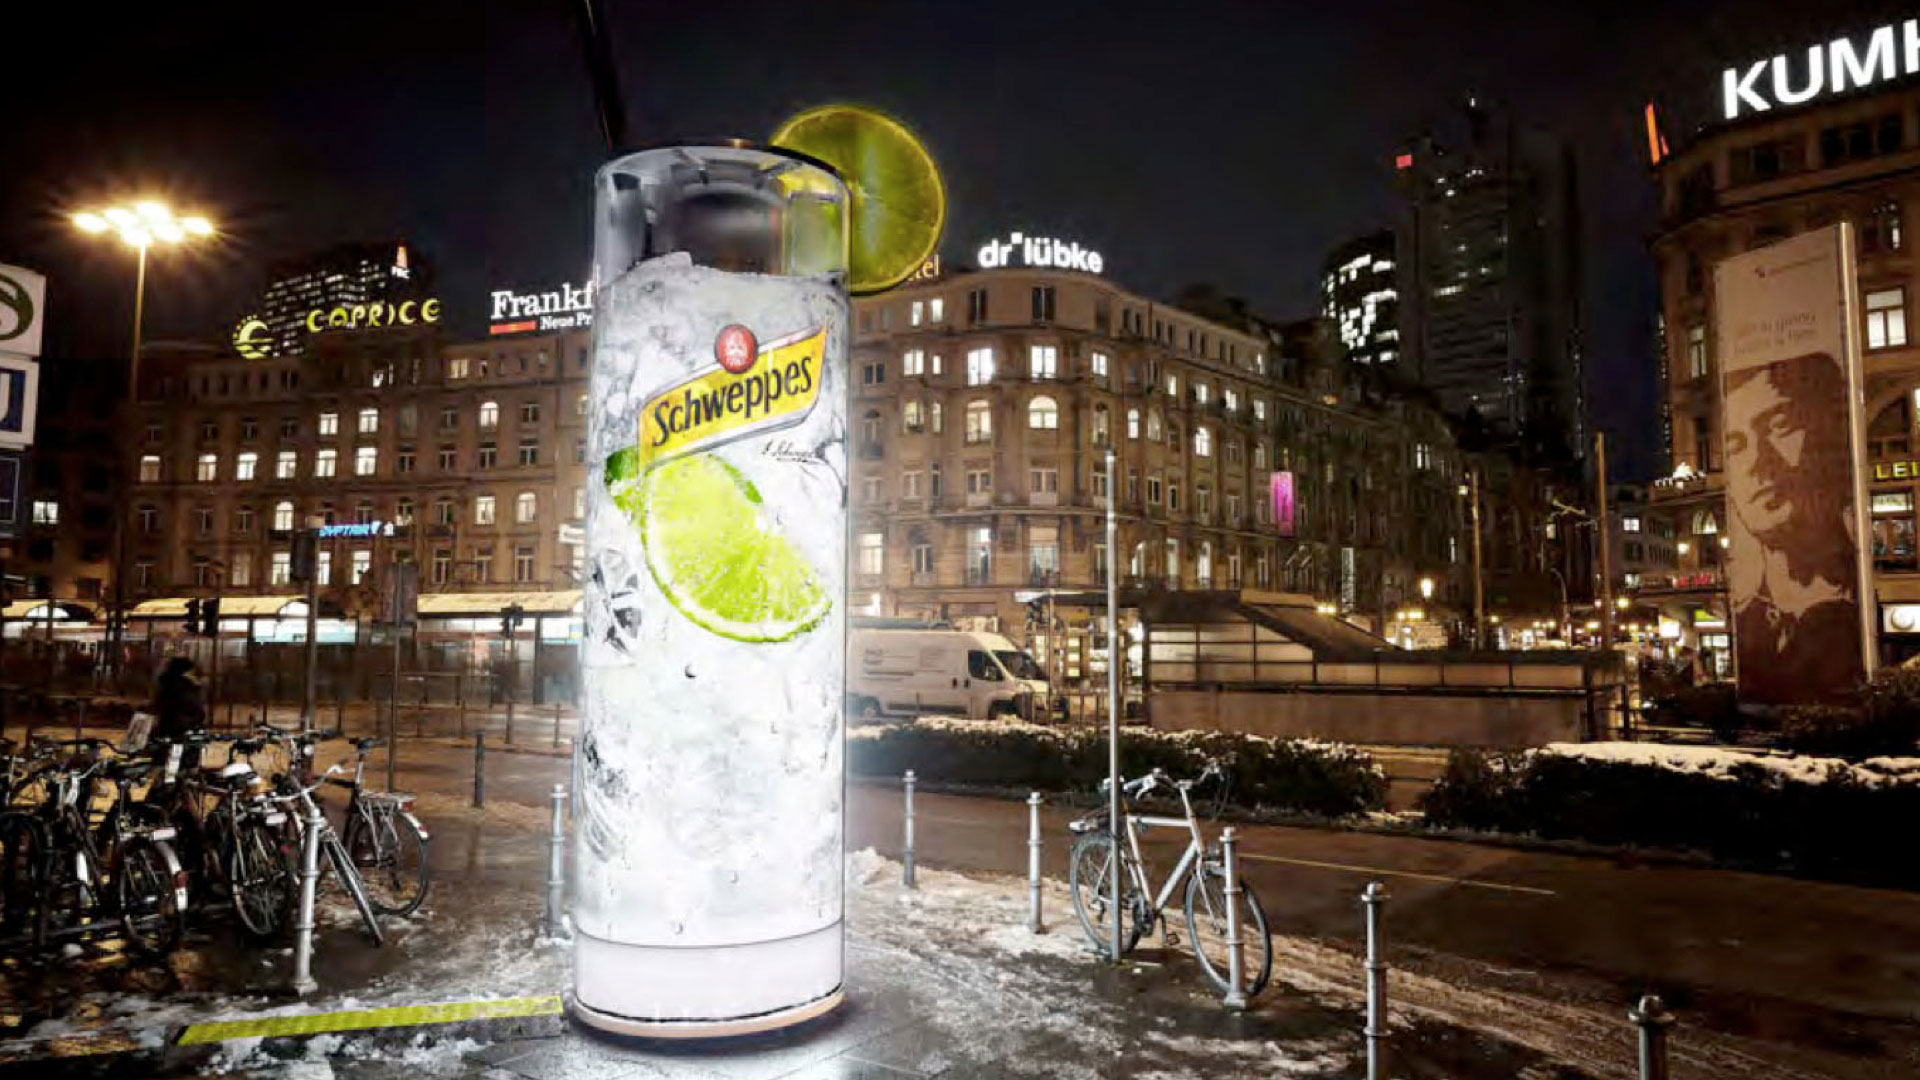 Ambient media campaign for the Schweppes brand. For a variety of advertising agencies, Andreas Geyer of ORANGE COUNCIL has developed integrated campaigns for SCHWEPPES, the NORWEGIAN SEAFOOD ASSOCIATION, FRITZ-KOLA, WEIHENSTEPHAN-Dairy Products and a variety of beer brands.